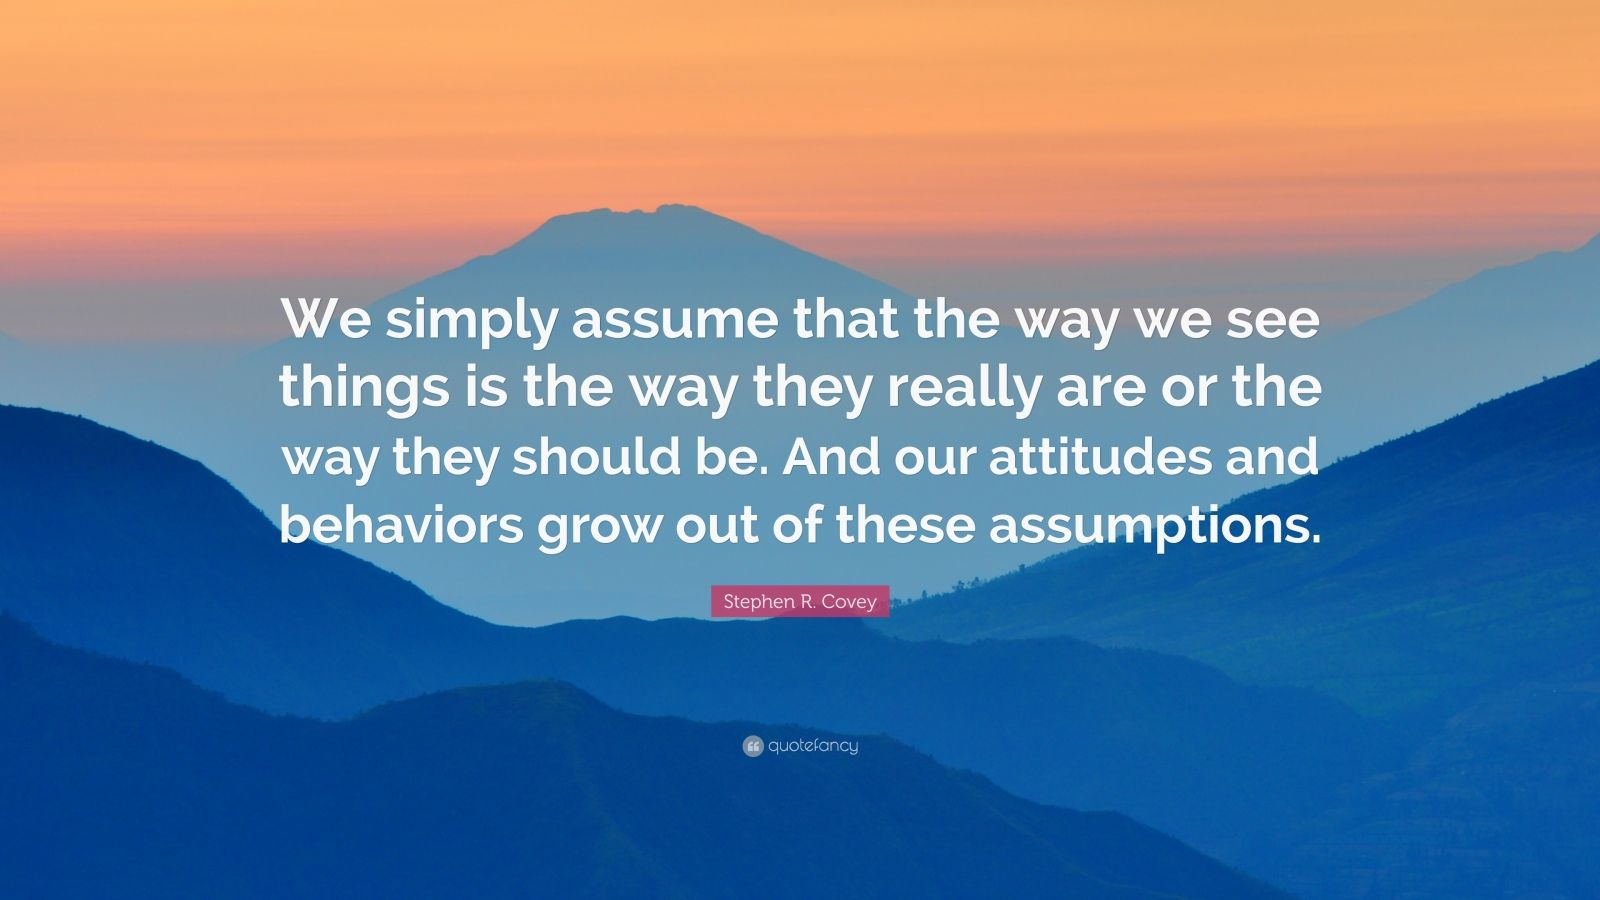 """Stephen R. Covey Quote: """"We simply assume that the way we see things is the way they really are or the way they should be. And our attitudes and behaviors grow out of these assumptions."""""""